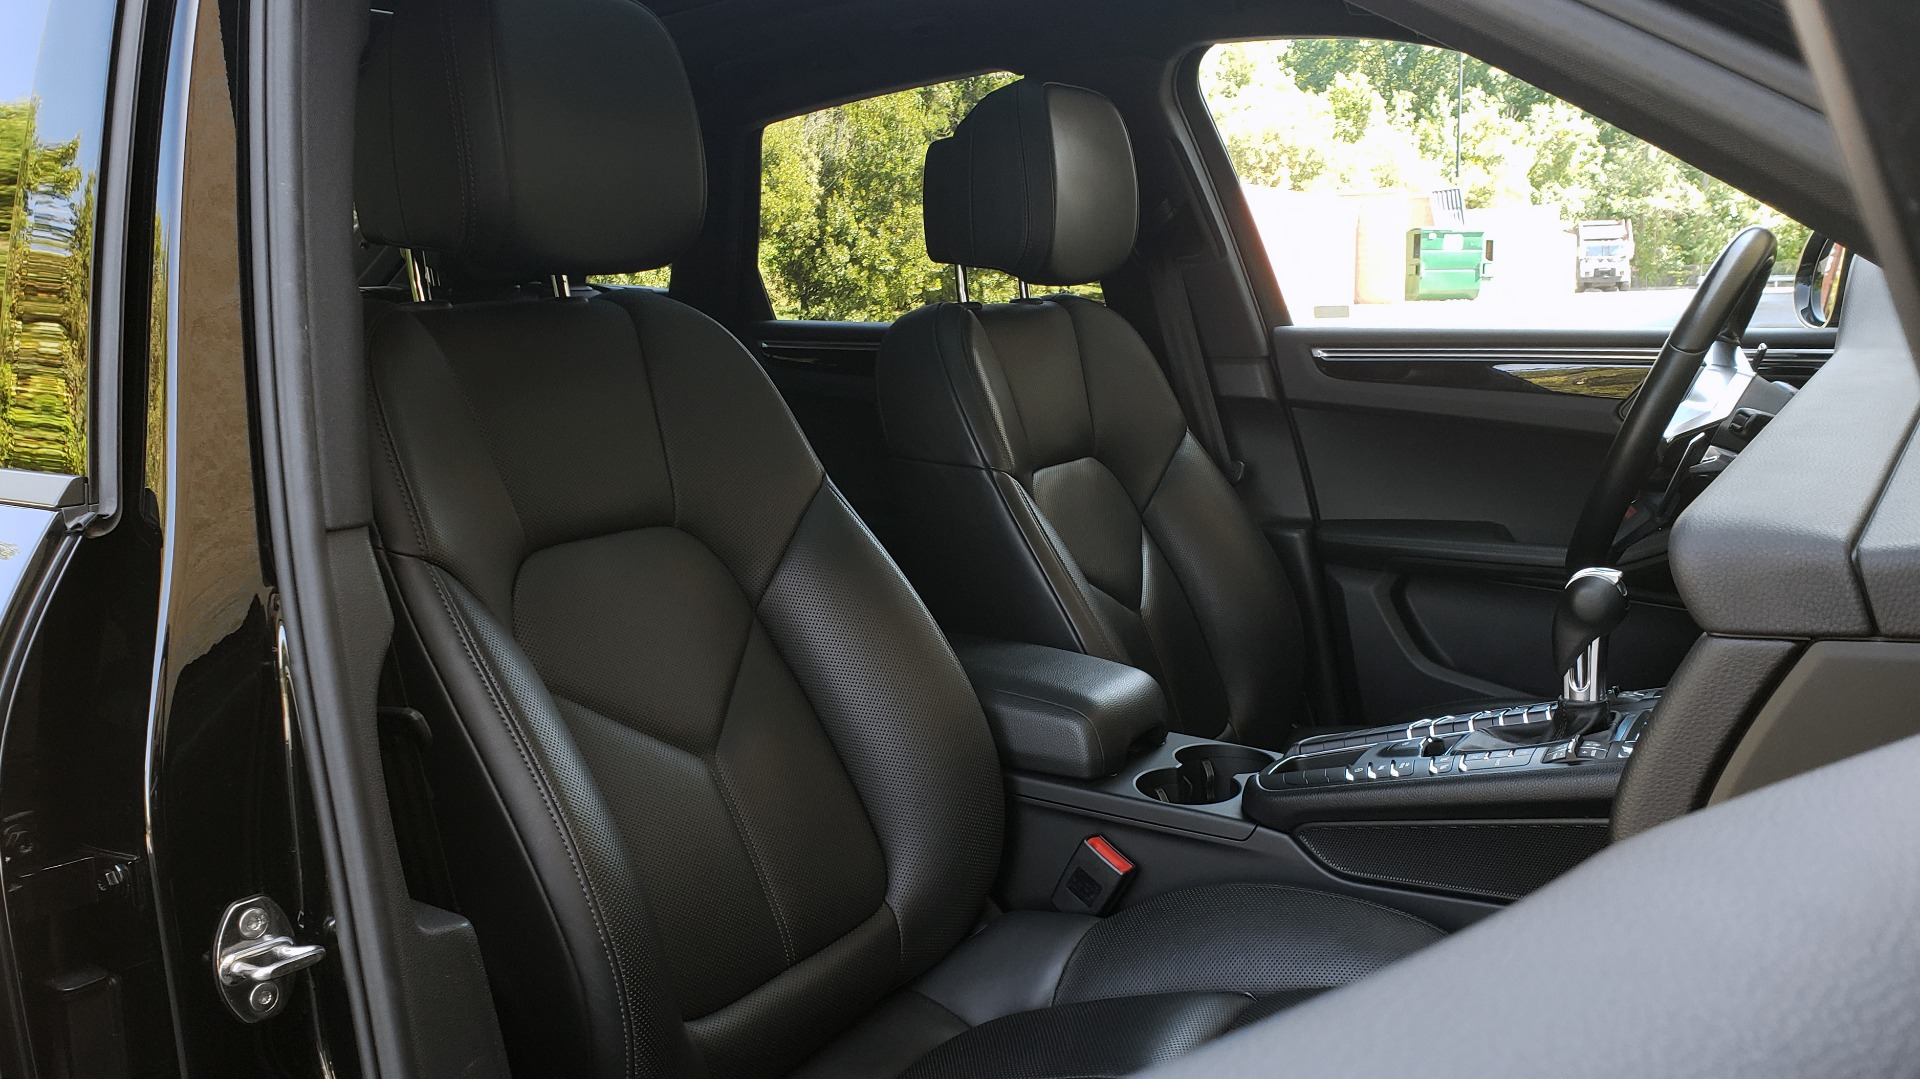 Used 2018 Porsche MACAN PREMIUM PKG PLUS / NAV / PDK / BOSE / REARVIEW for sale Sold at Formula Imports in Charlotte NC 28227 72